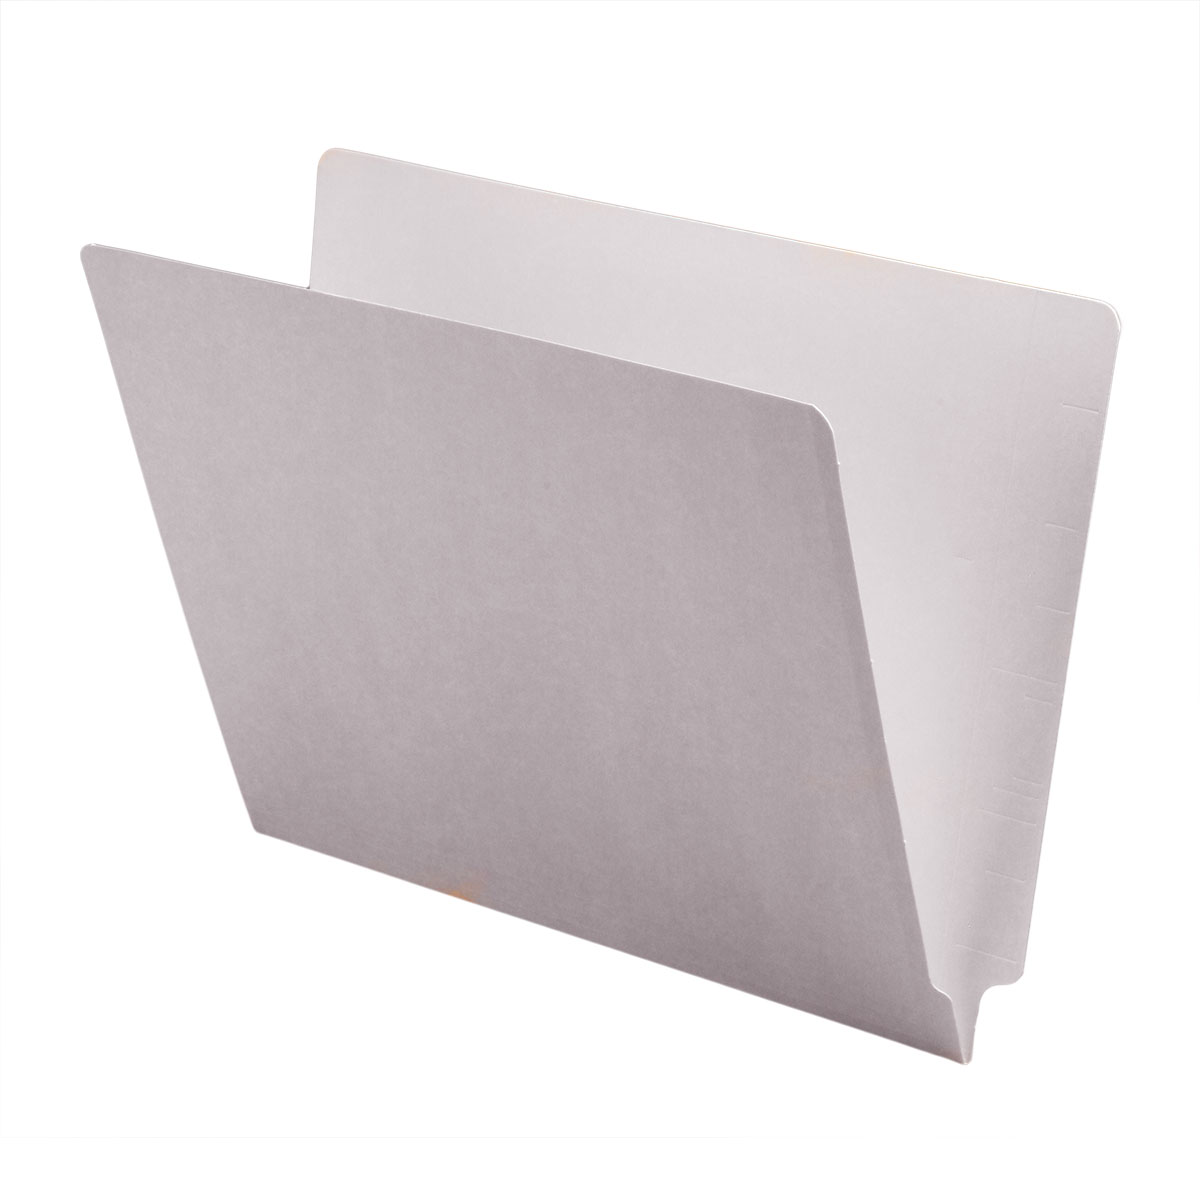 14pt Red Folders Box of 50 Letter Size Full Cut 2-Ply END TAB